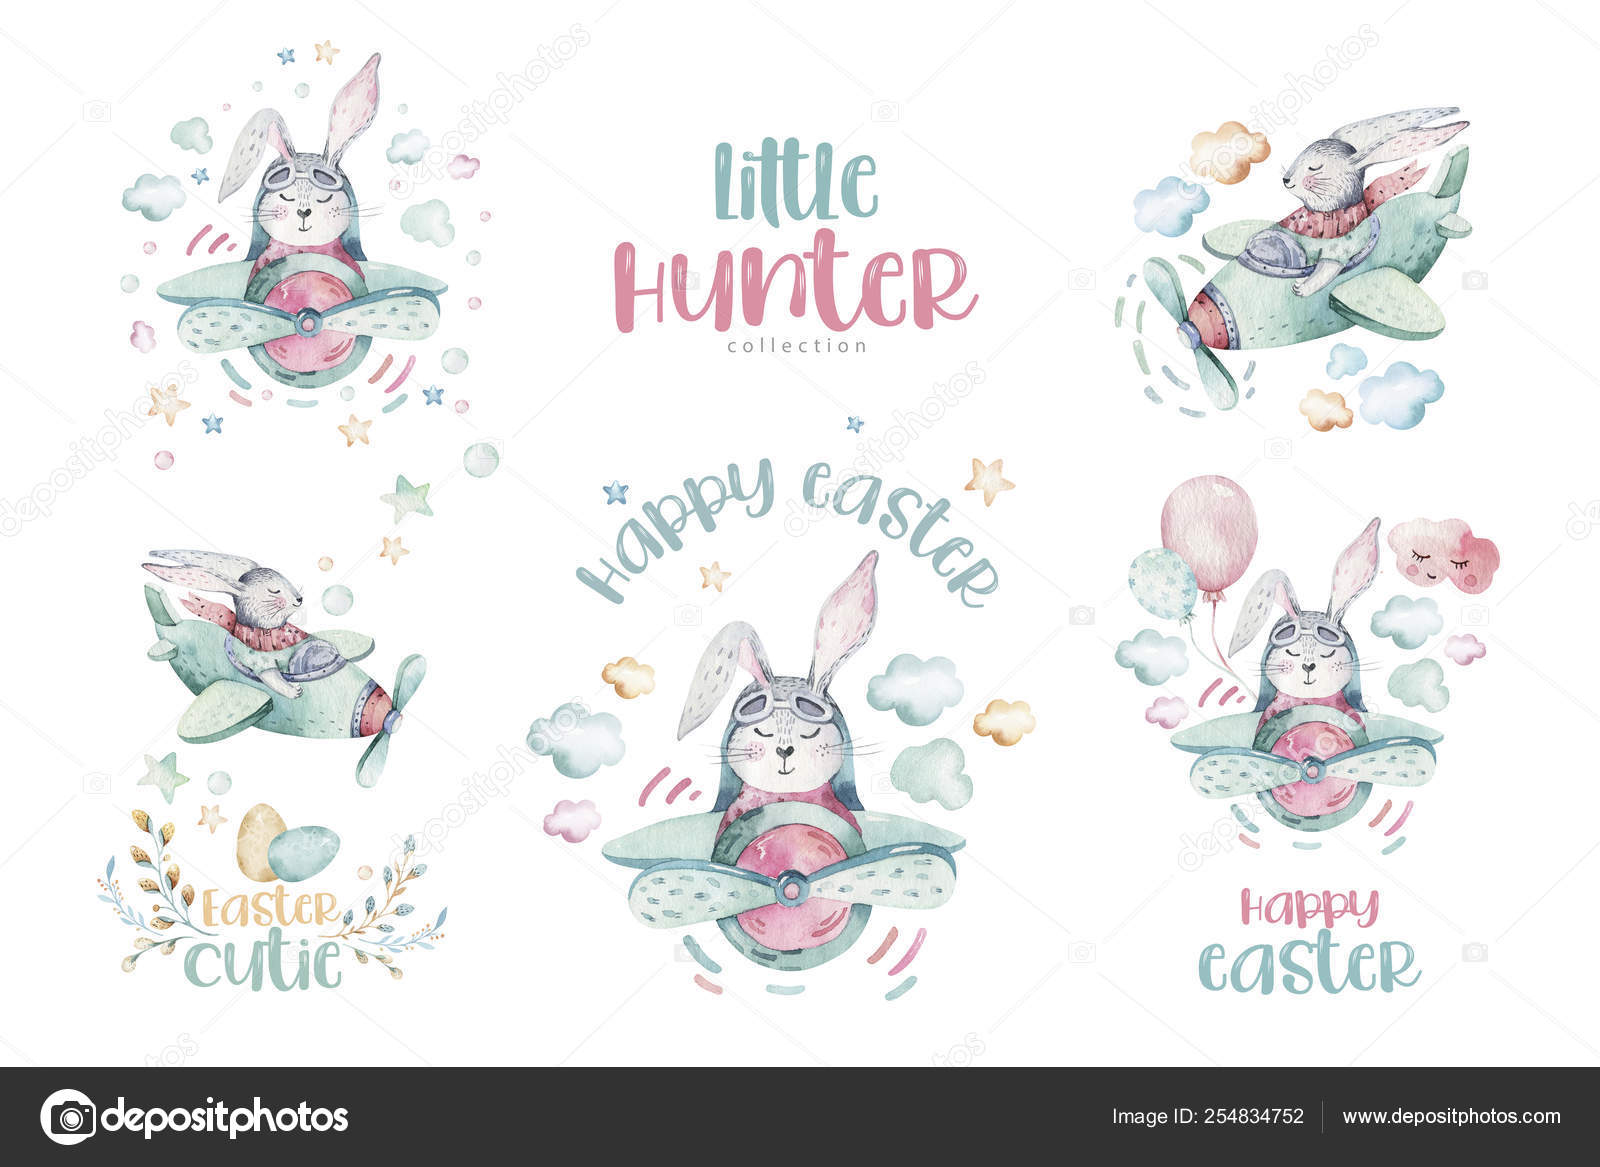 Hand Drawing Fly Cute Easter Pilot Bunny Watercolor Cartoon Bunnies With Airplane In The Sky Turquoise Watercolour Animal Rabbit Flying Art Flight Illustration Stock Photo C Mykef 254834752